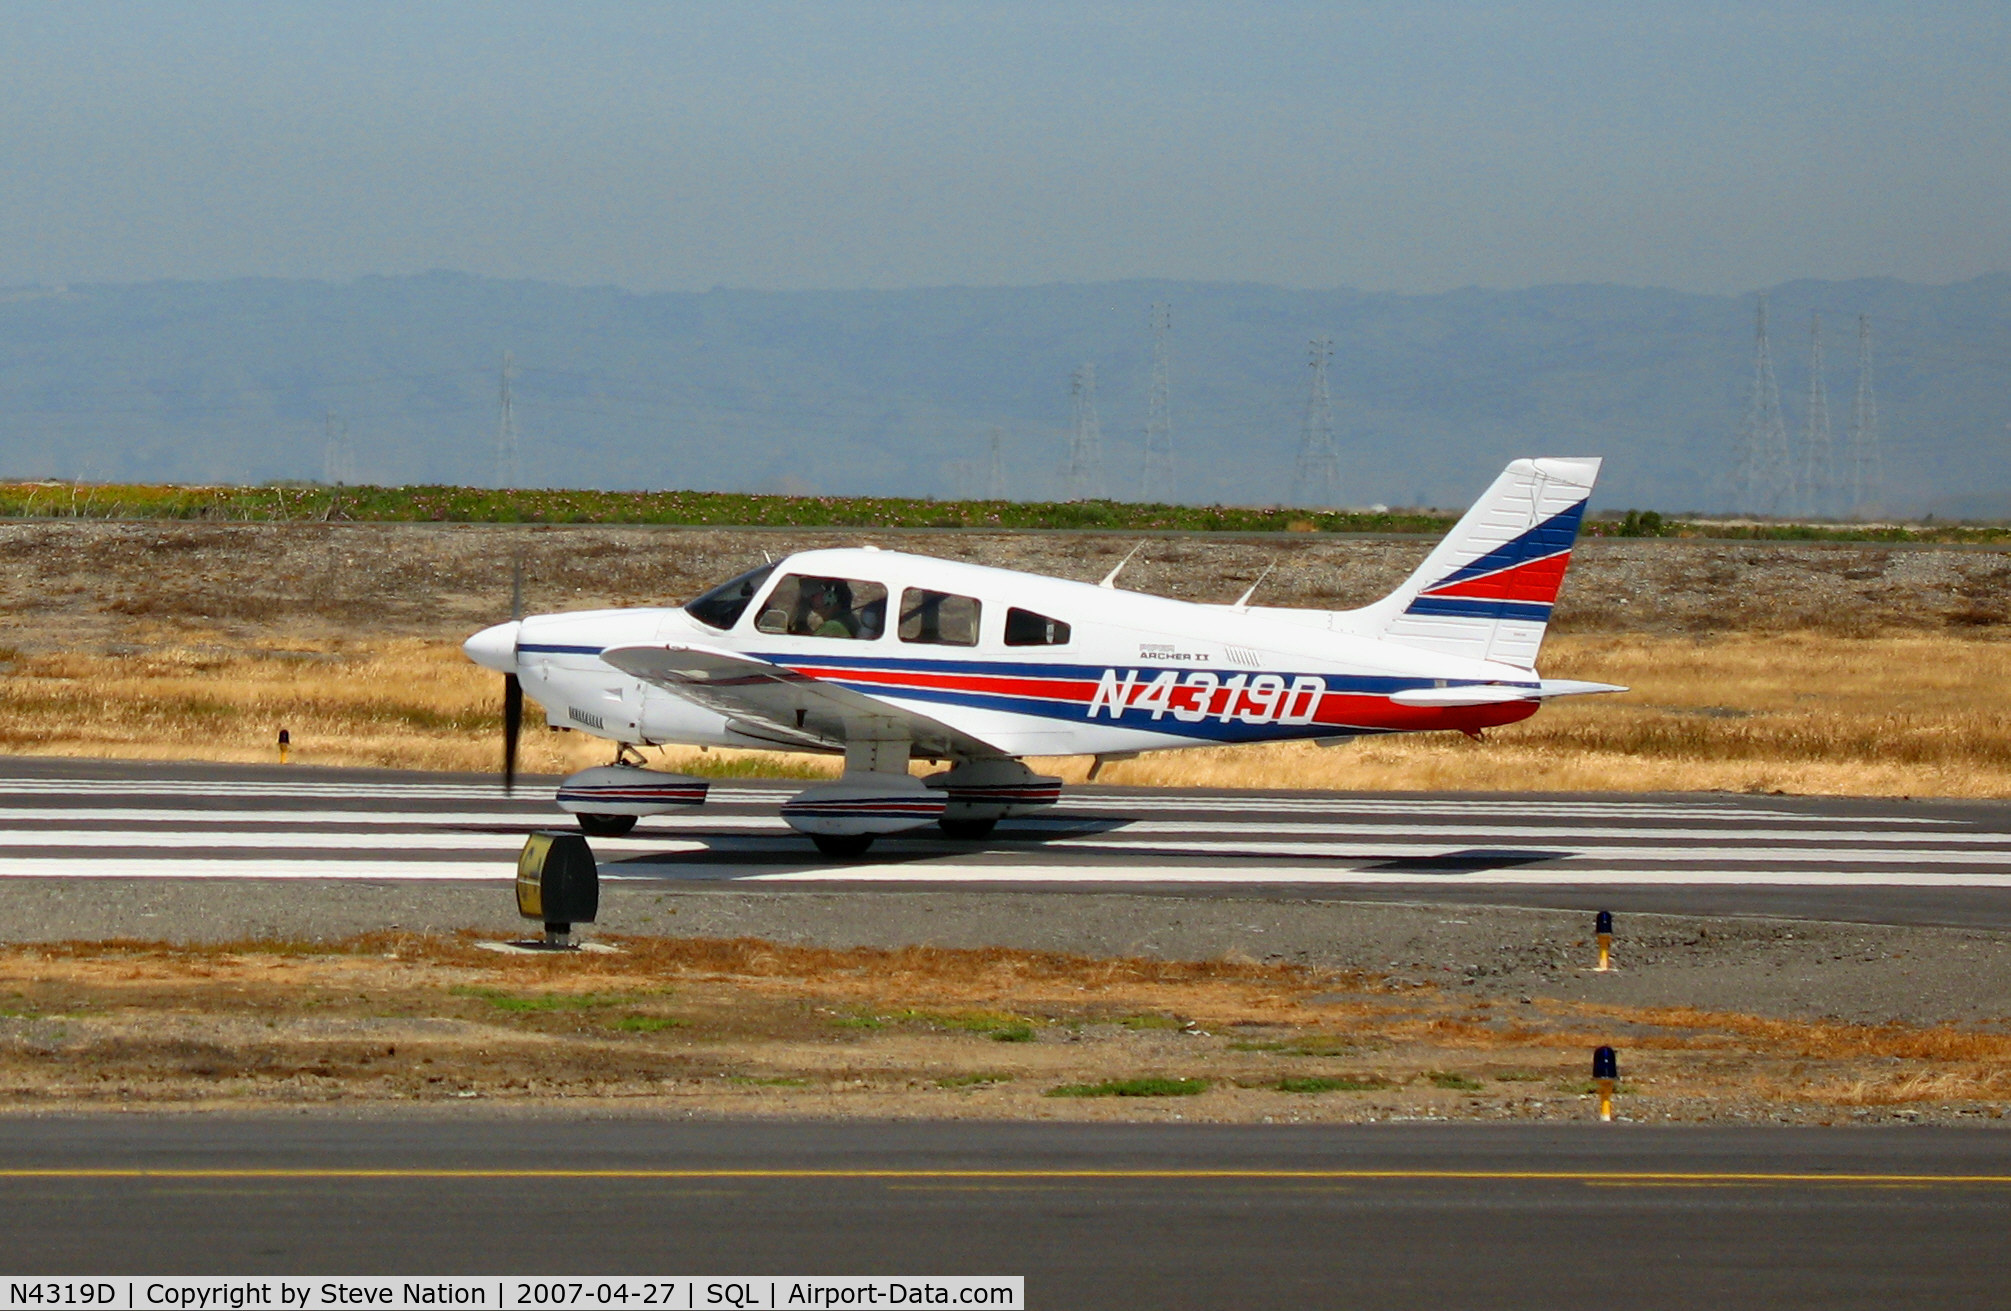 N4319D, 1983 Piper PA-28-181 C/N 28-8490007, Arch Aviation 1983 Piper PA-28-181 beginning take-off run @ San Carlos, CA